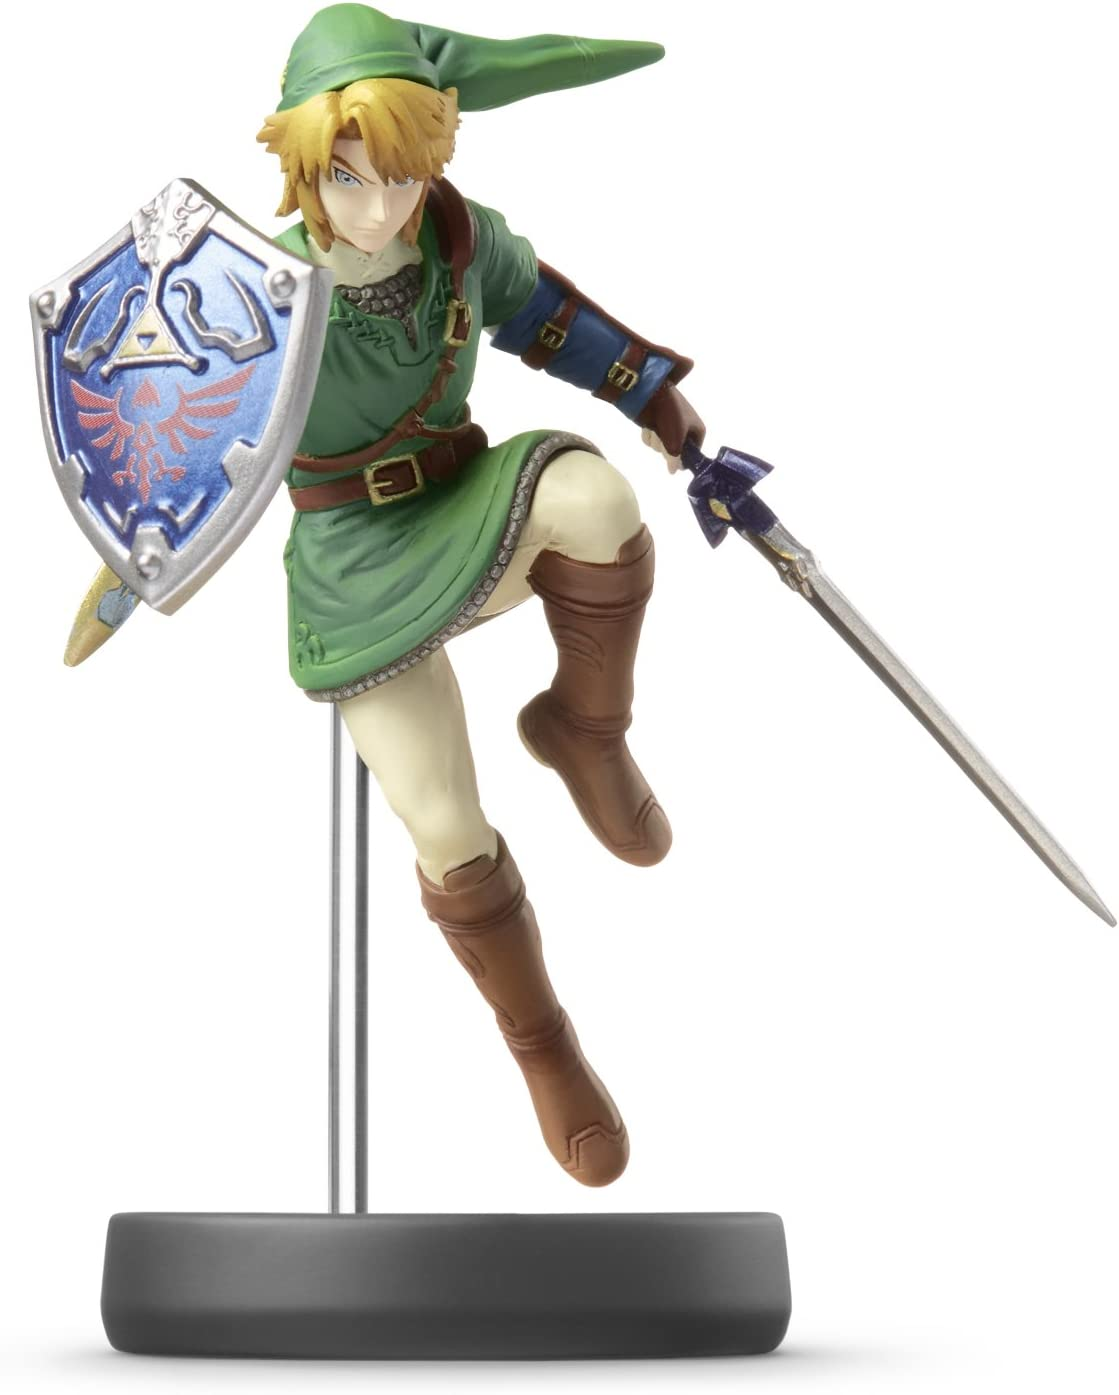 Amazon com: Link amiibo (Super Smash Bros Series): nintendo wii u